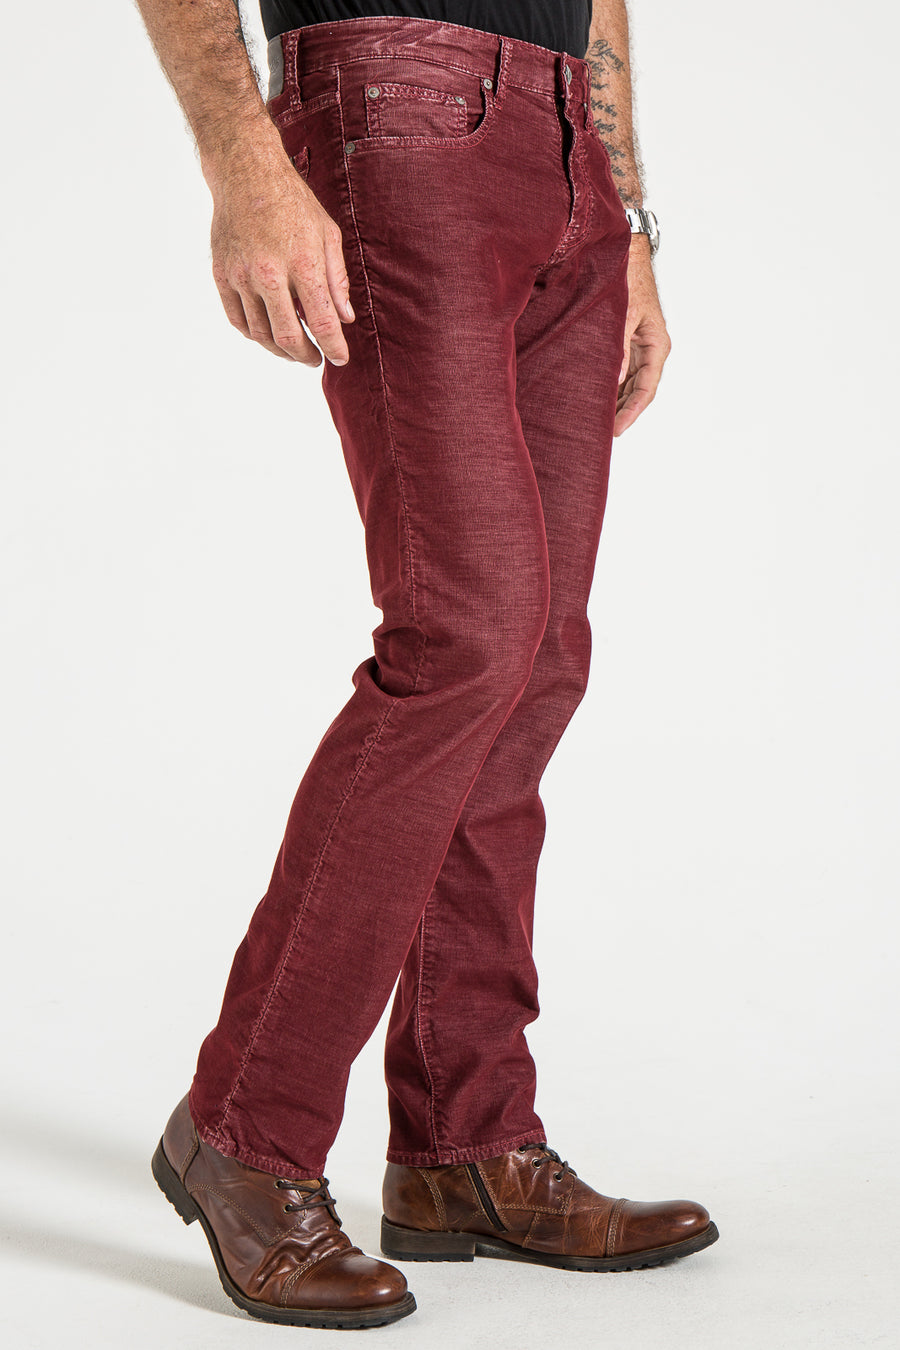 BARFLY SLIM IN WINE CORDUROY